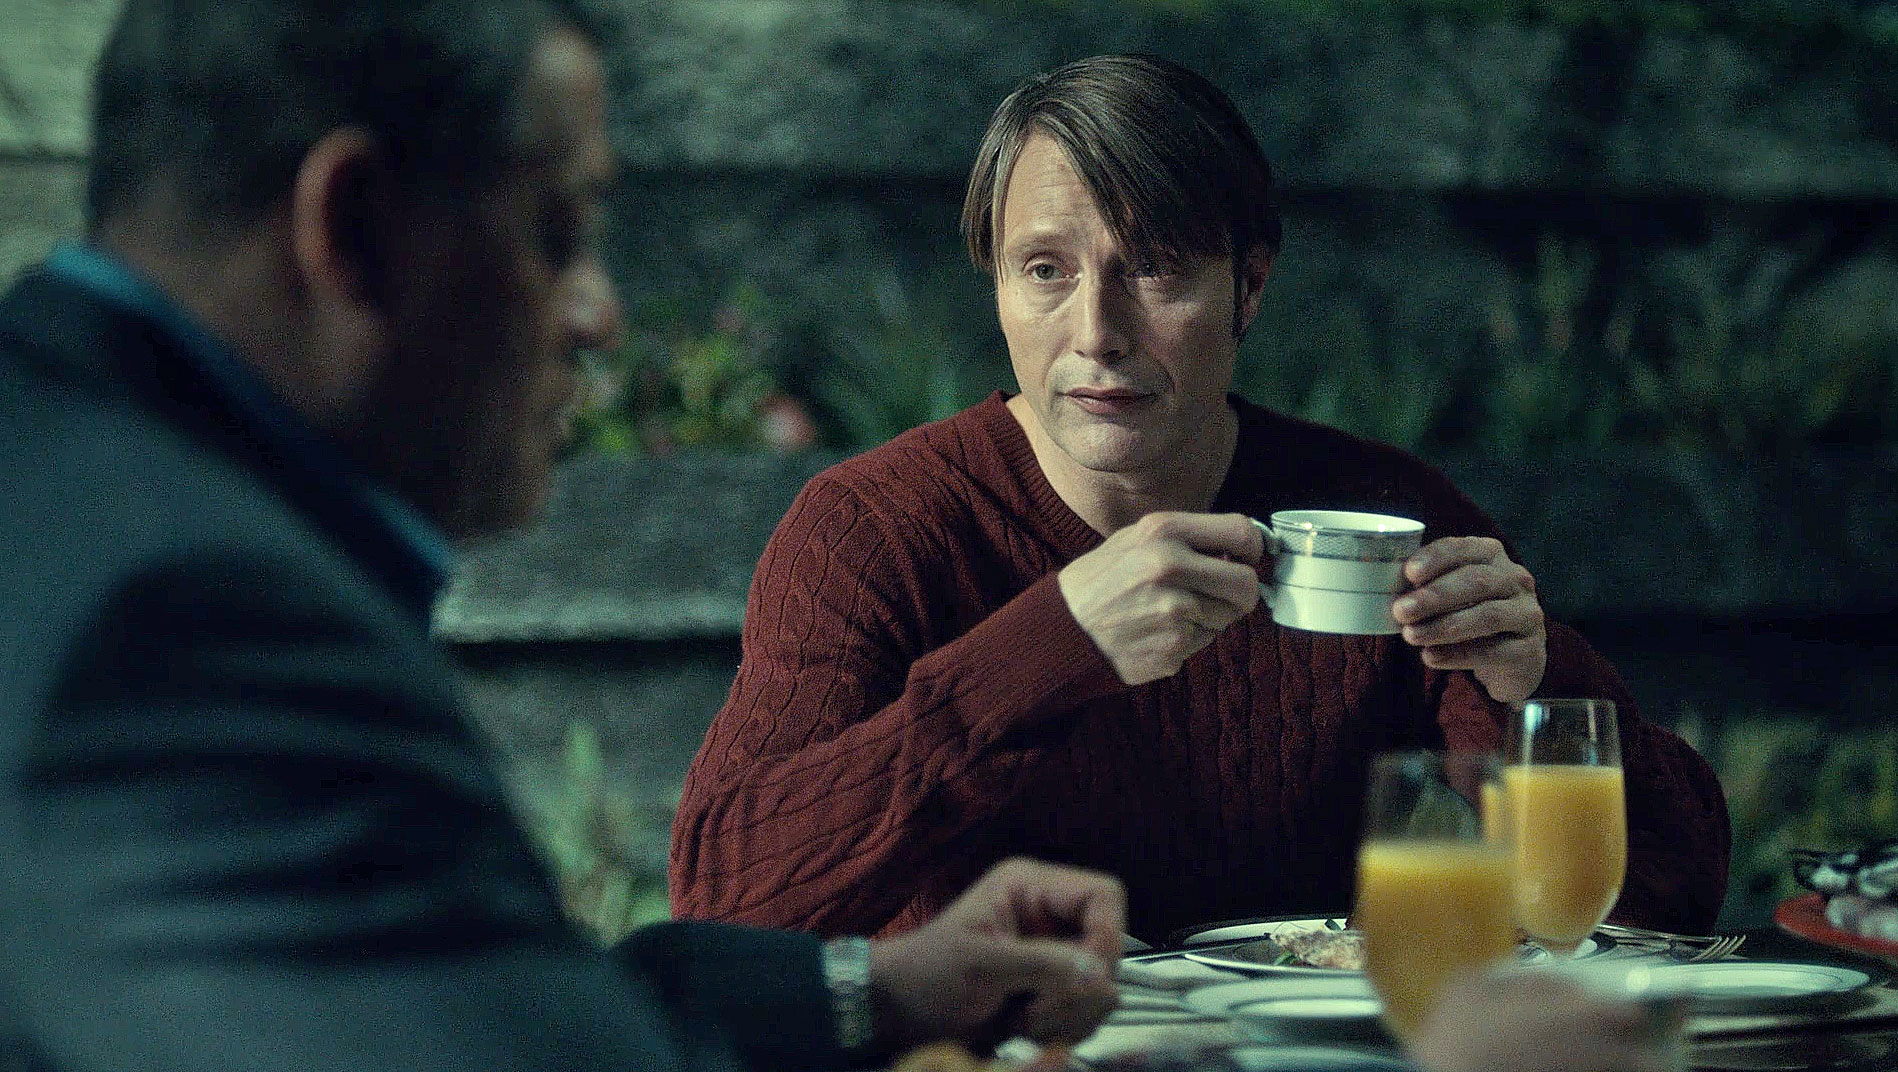 Cable Knit Sweater Hannibal at breakfast looking at Jack